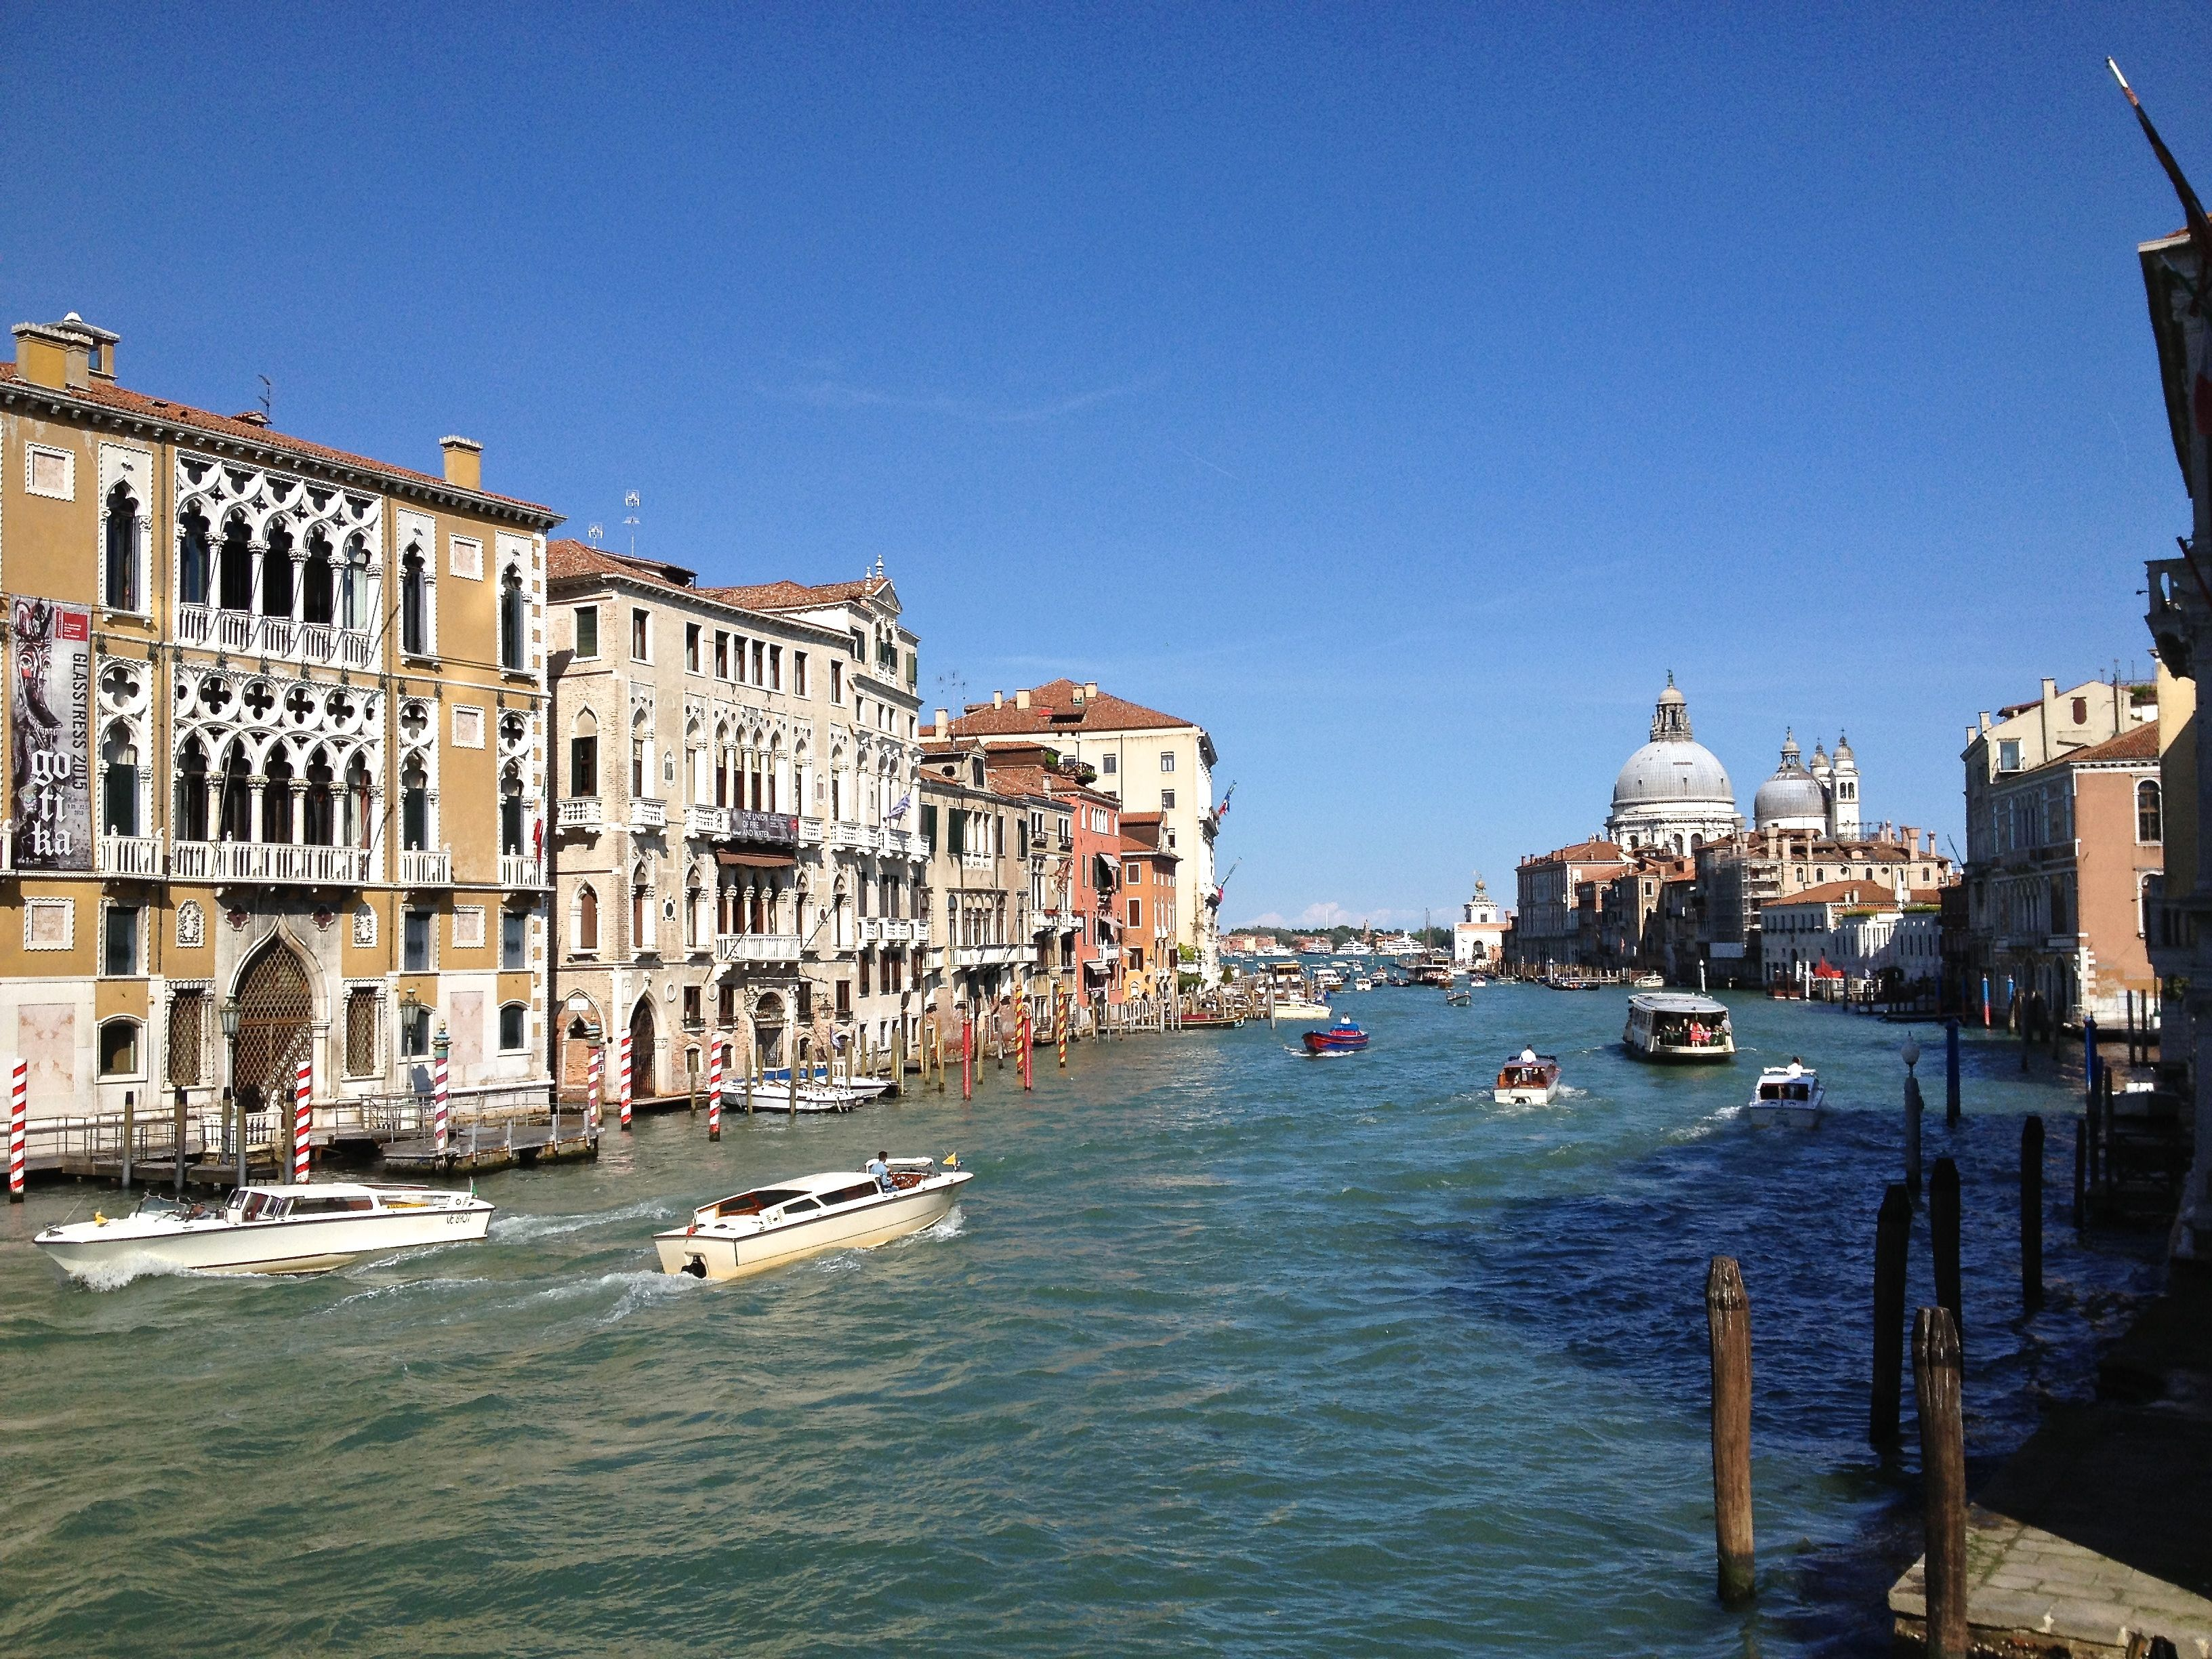 Photo of the view of the Grand Canal from the Accademia Bridge, Venice, Italy